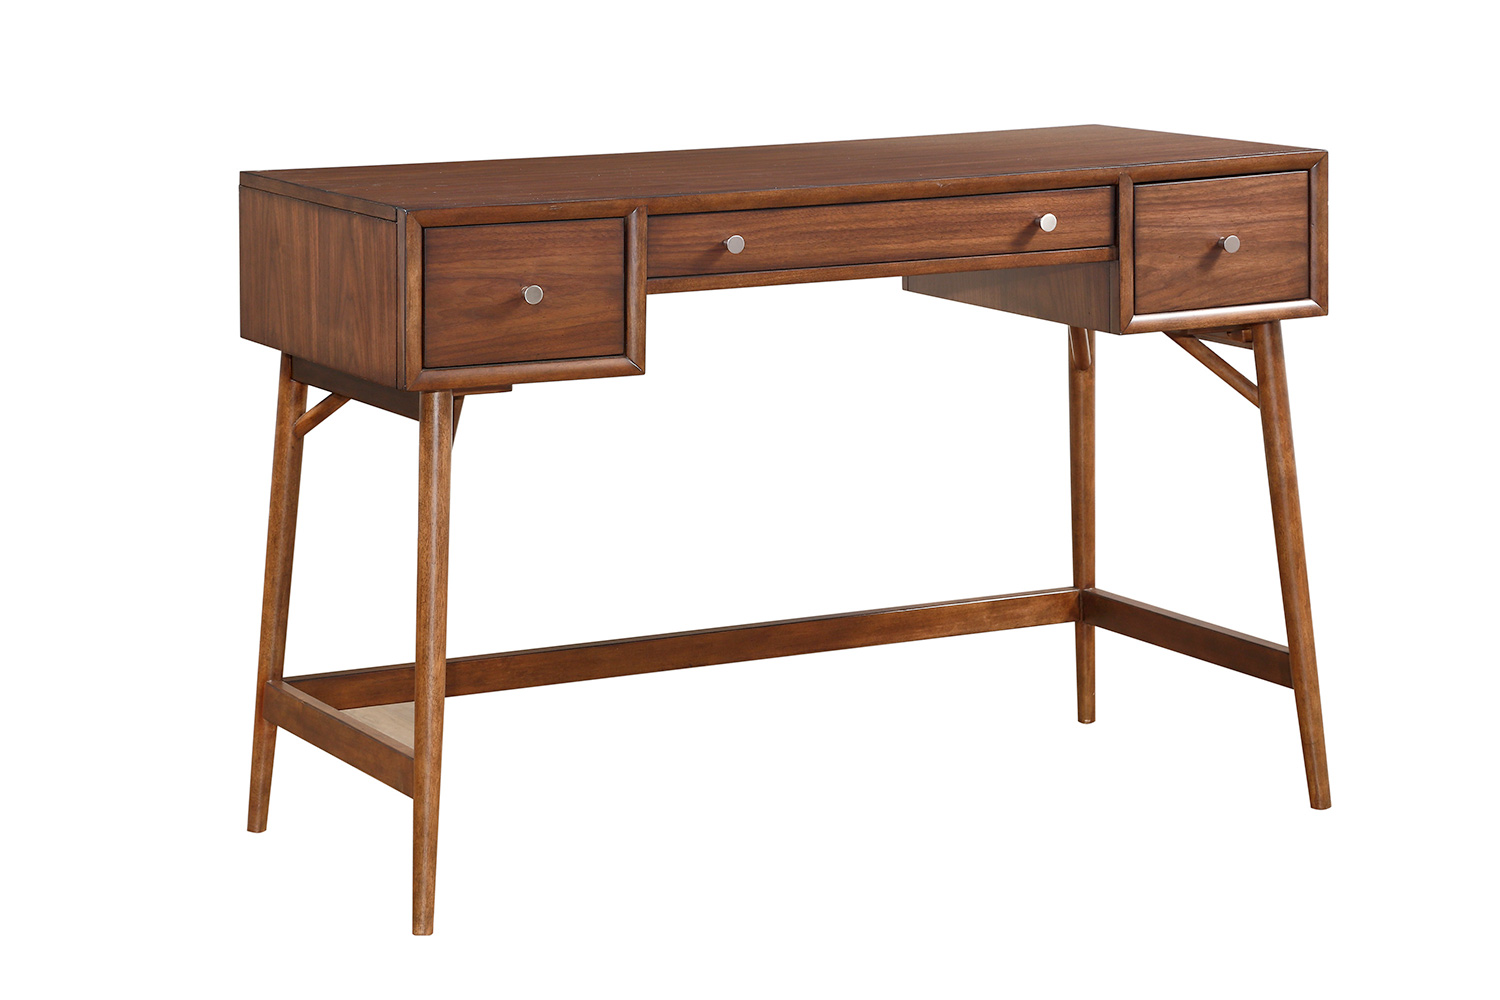 Homelegance Frolic Counter Height Writing Desk - Brown